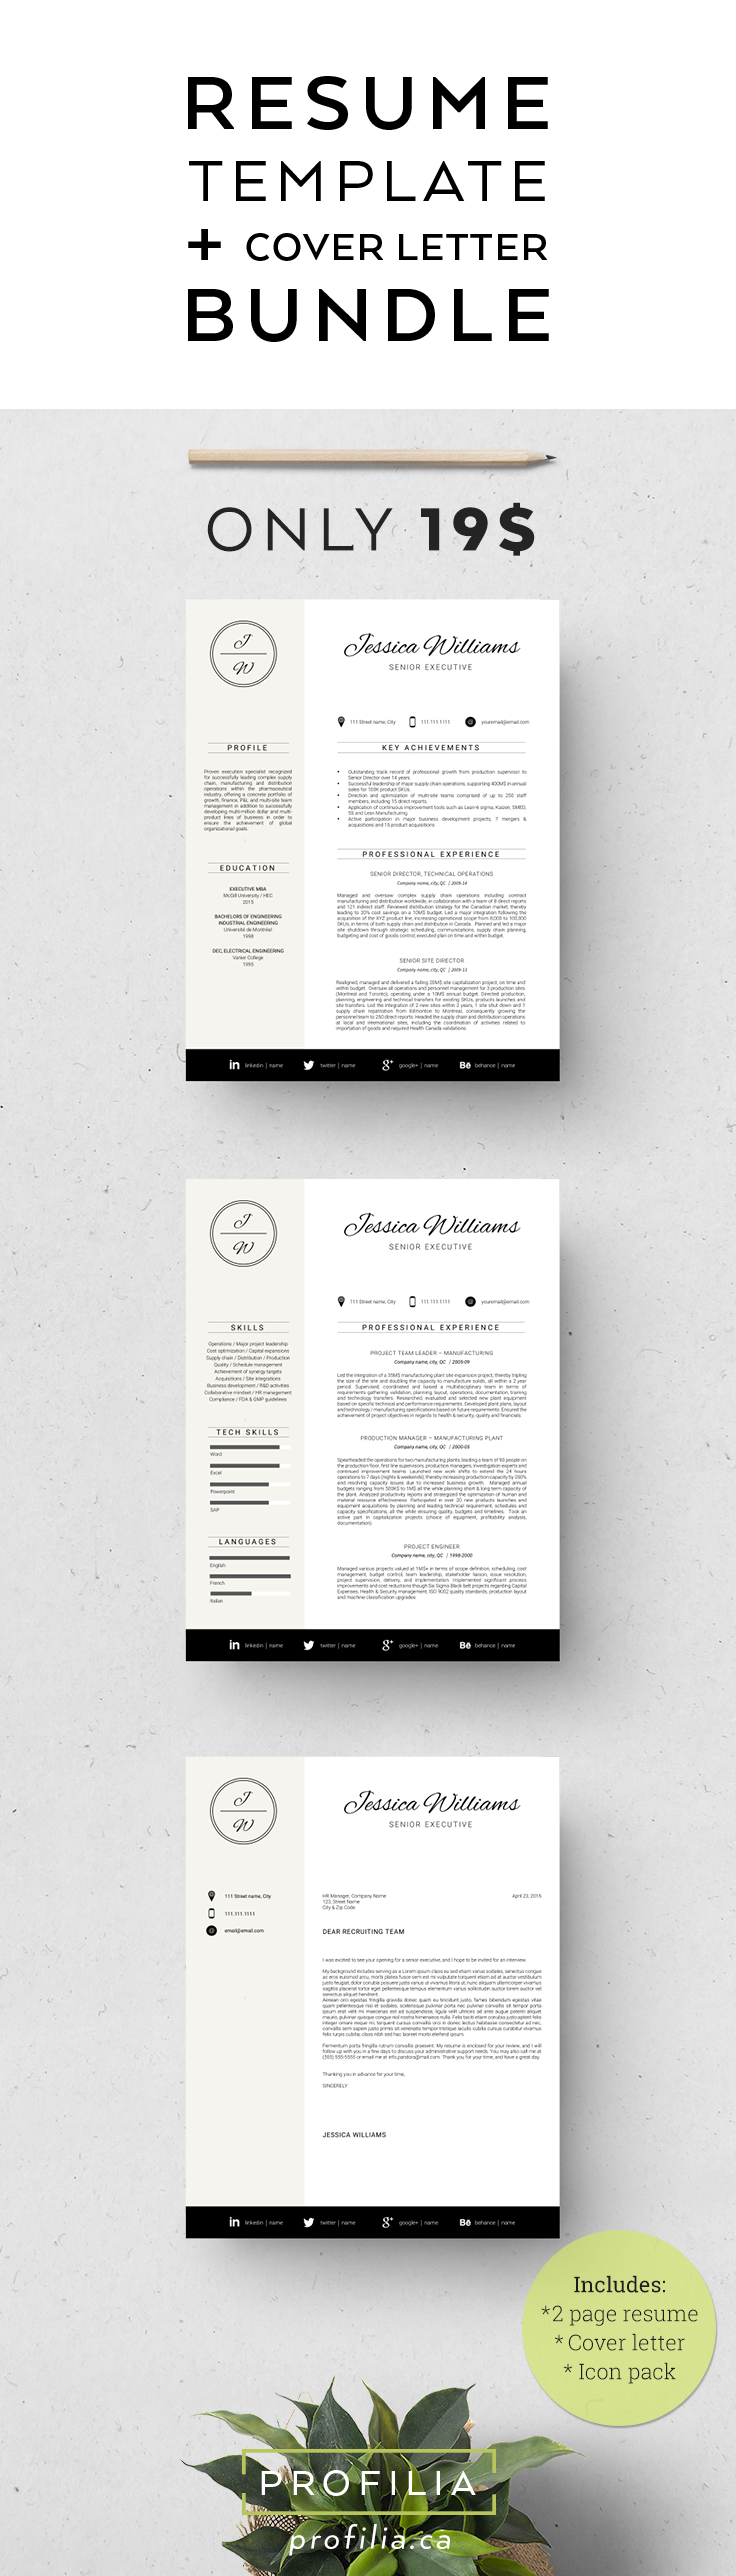 Modern resume & Cover letter Template. 3 Page bundle with fonts ...